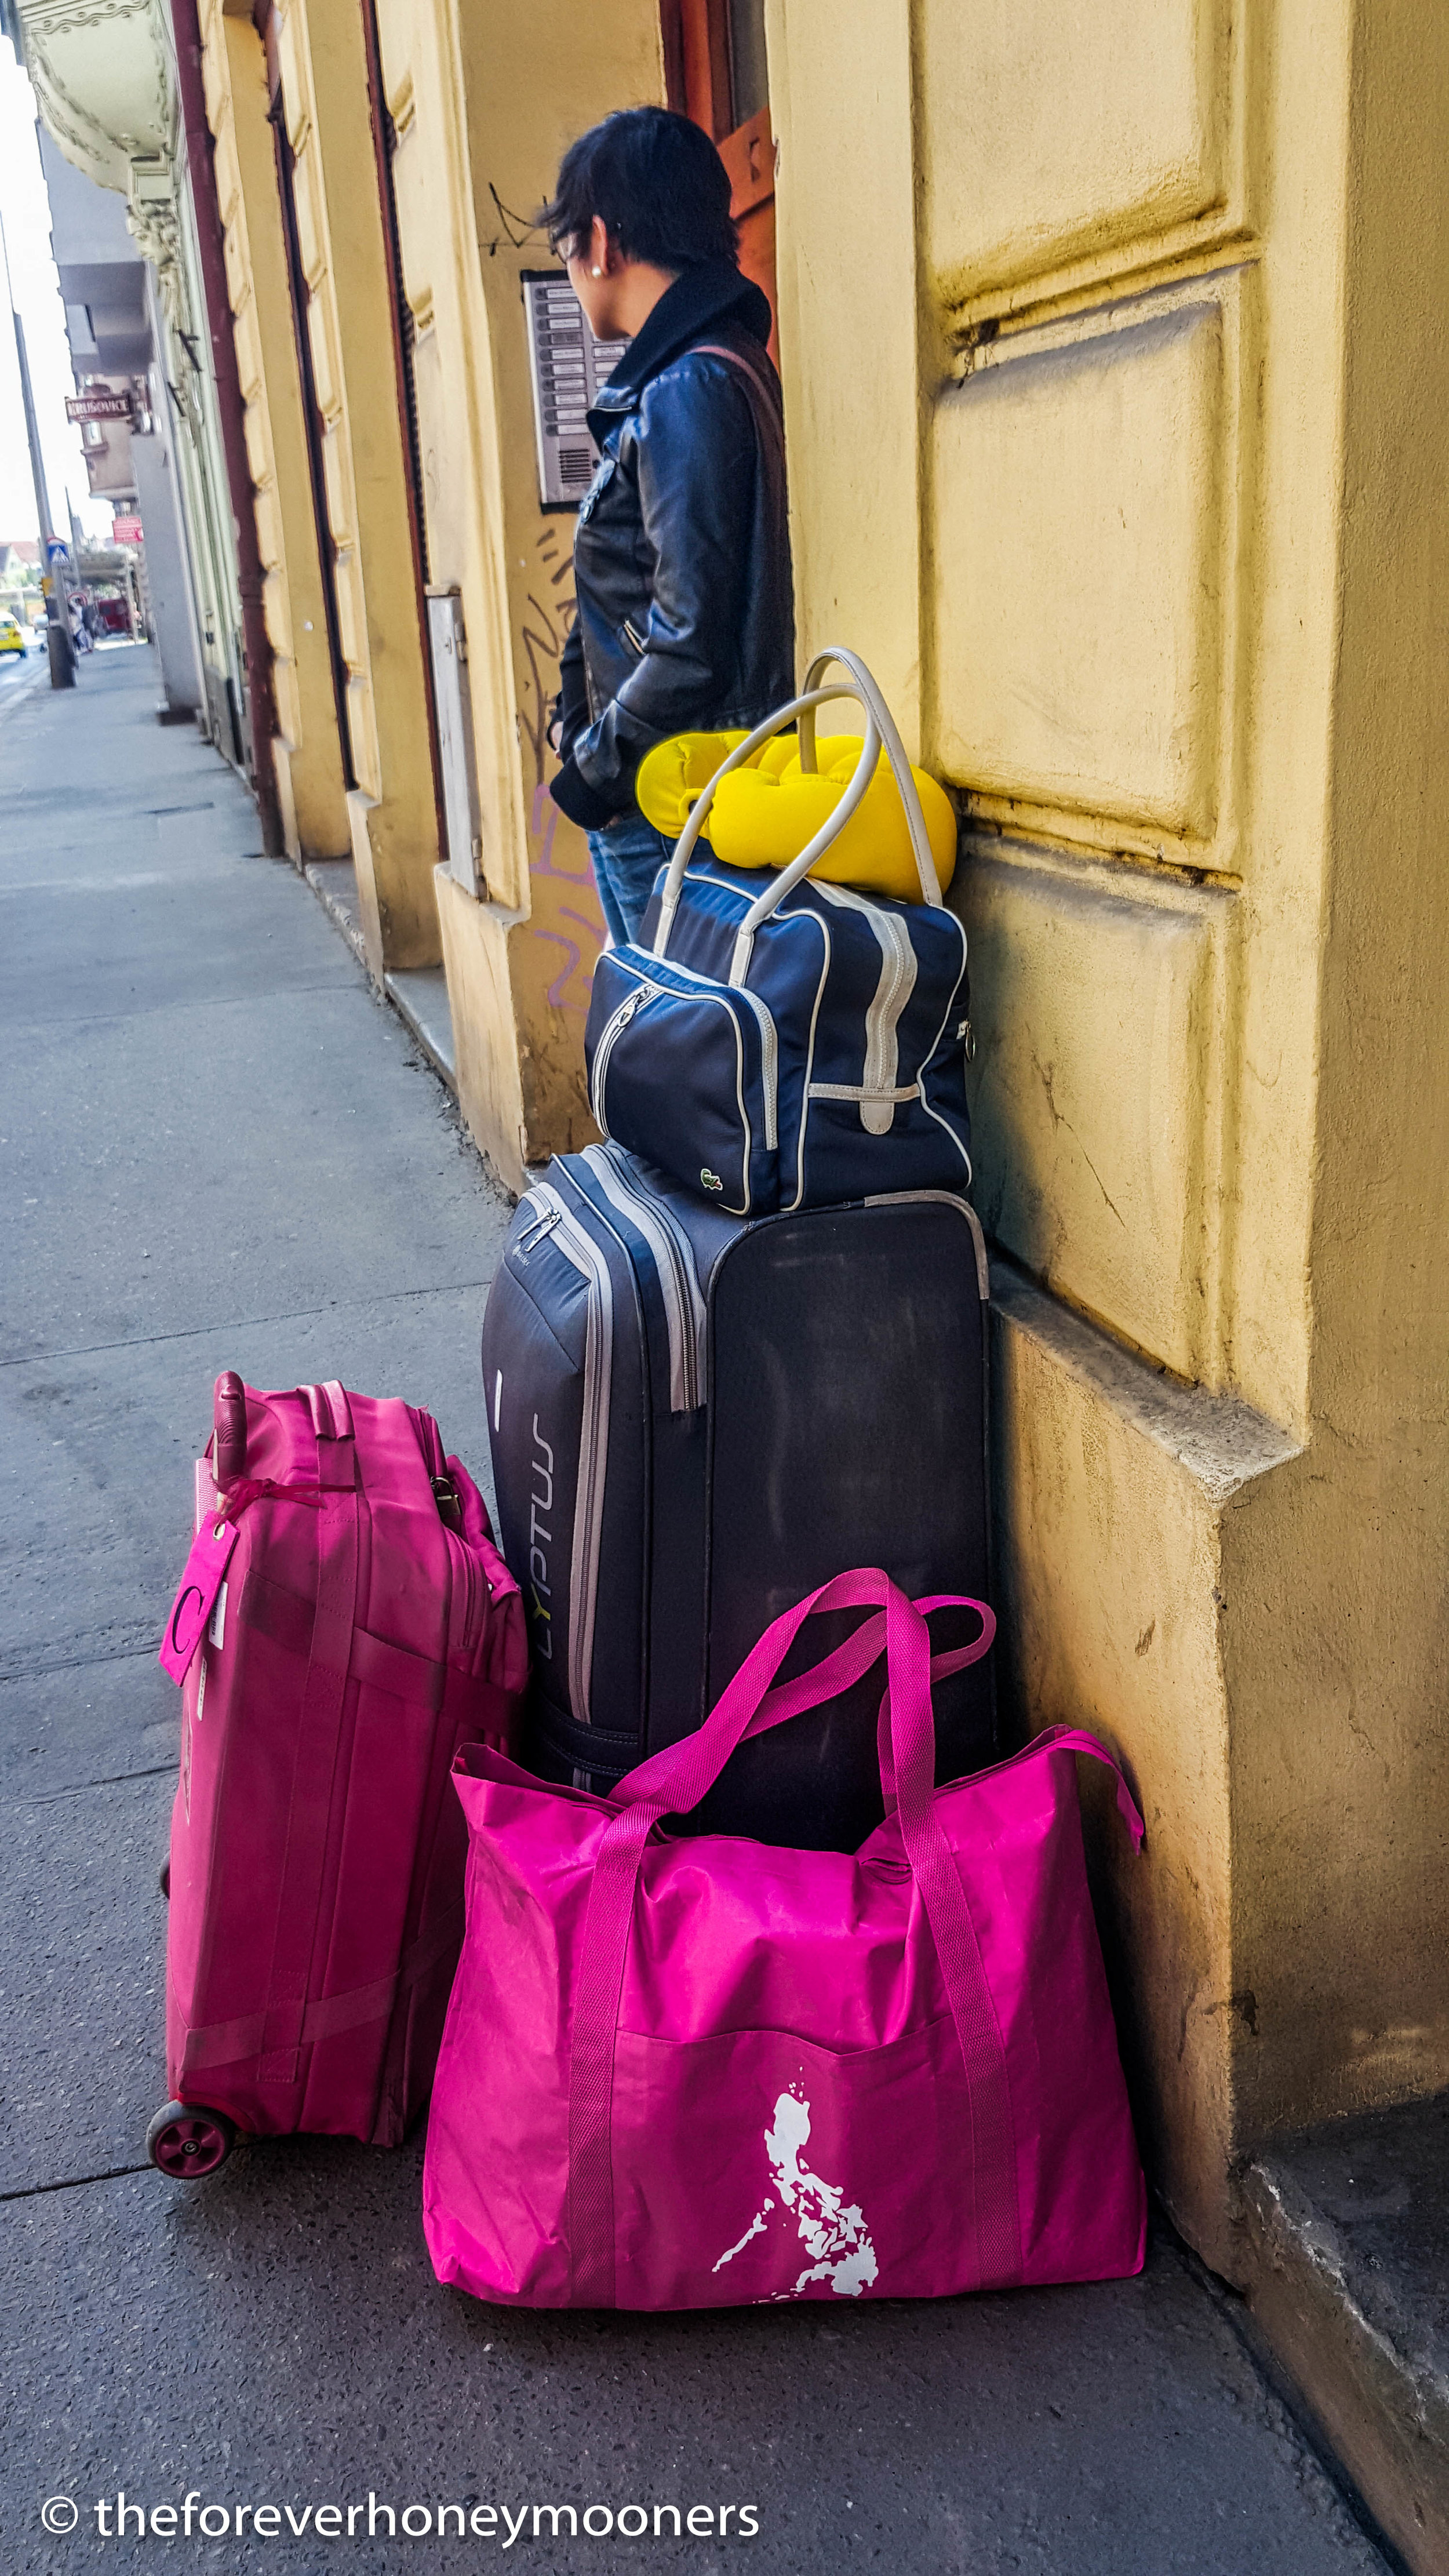 Packed and ready for the next leg.  That pink bag with the Philippine flags means we are nearing the end of our trip :)